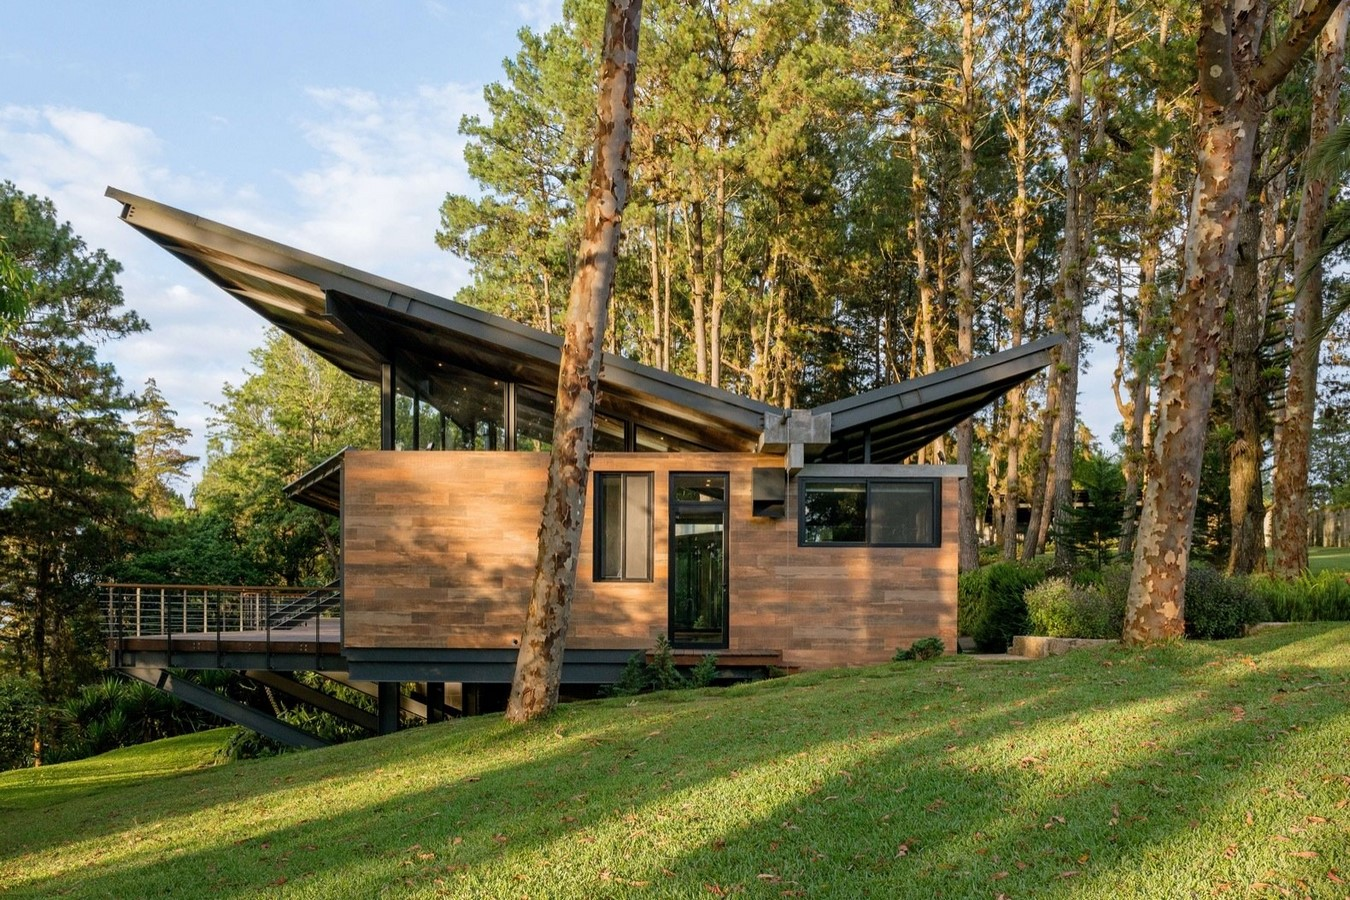 10 Things to know about butterfly roofing - Sheet2